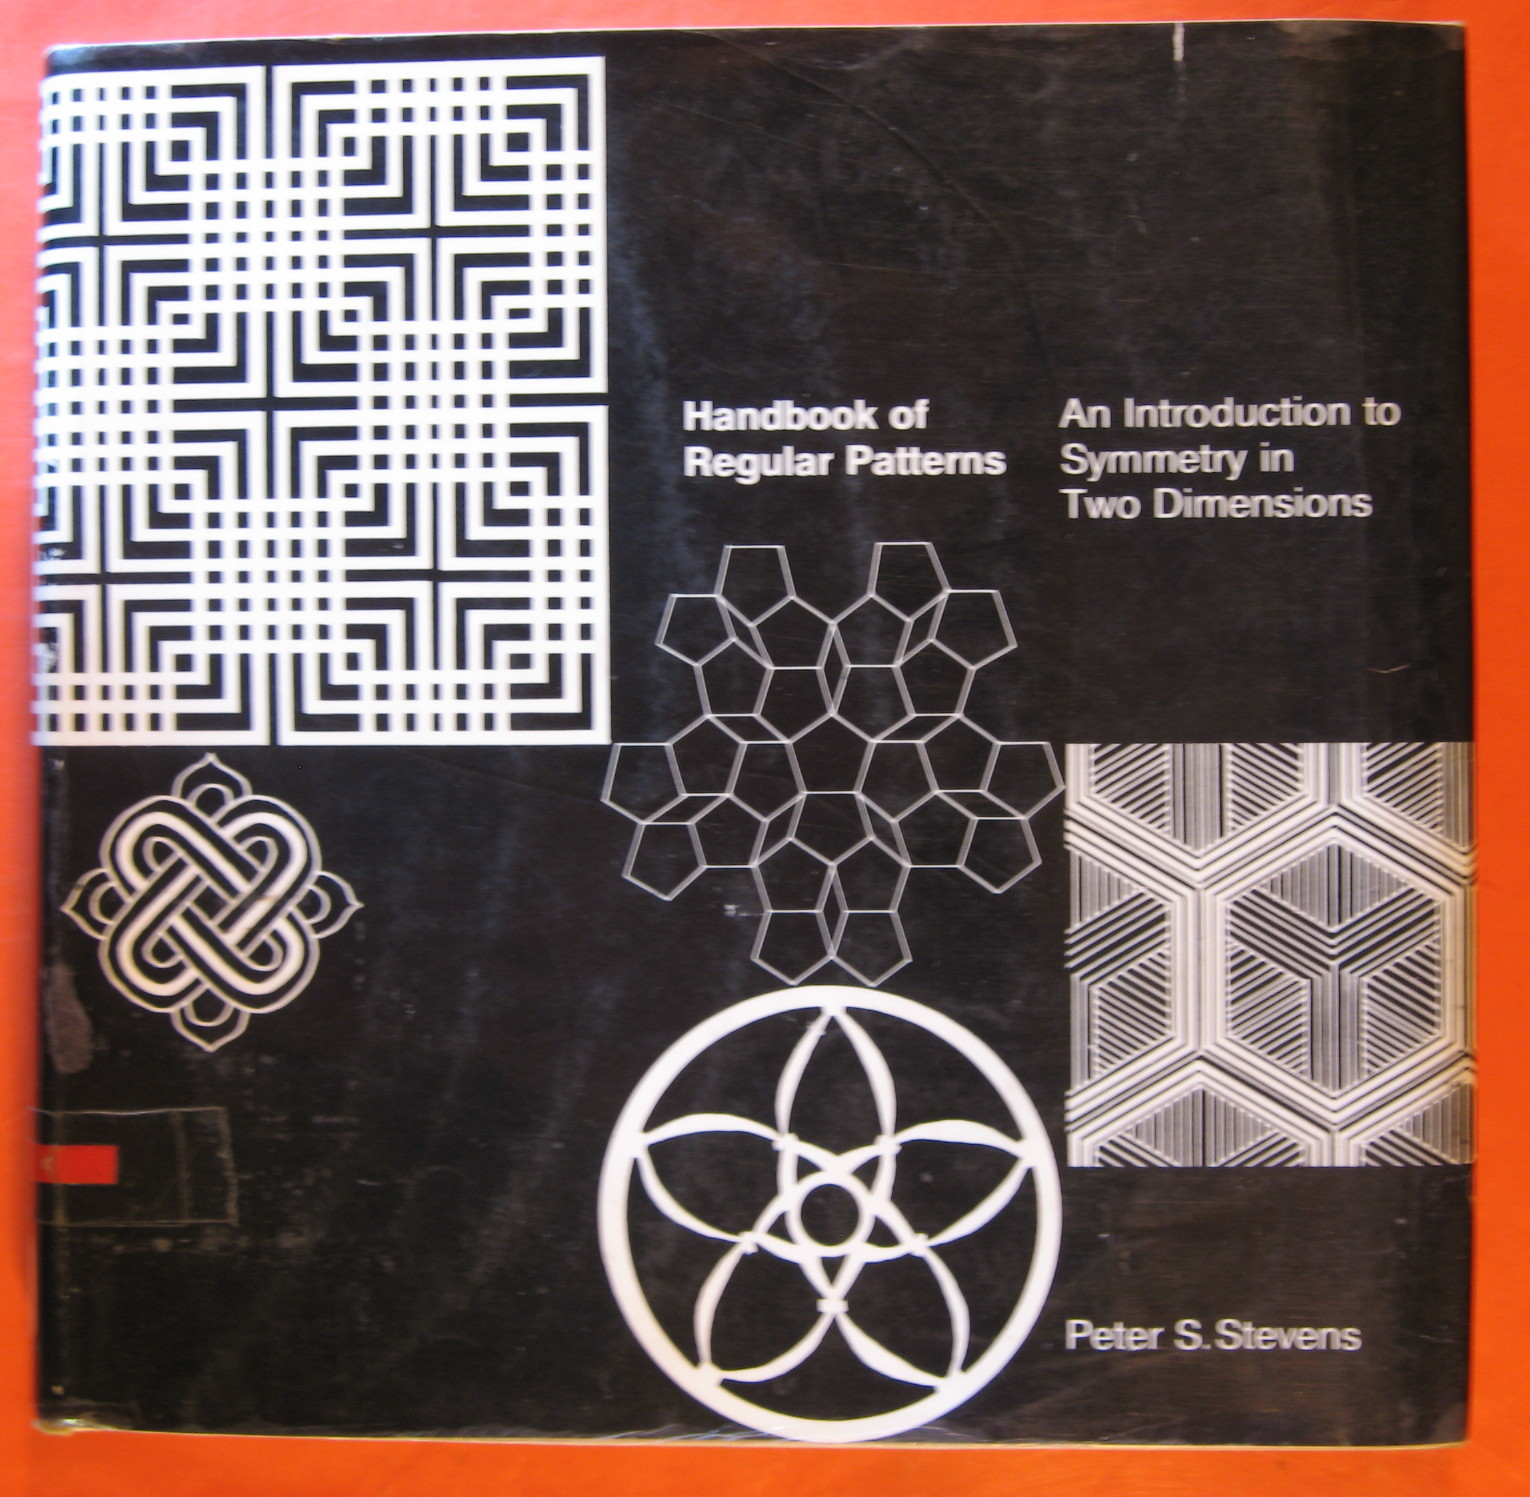 Handbook of Regular Patterns: An Introduction to Symmetry in Two Dimensions, Stevens, Peter S.